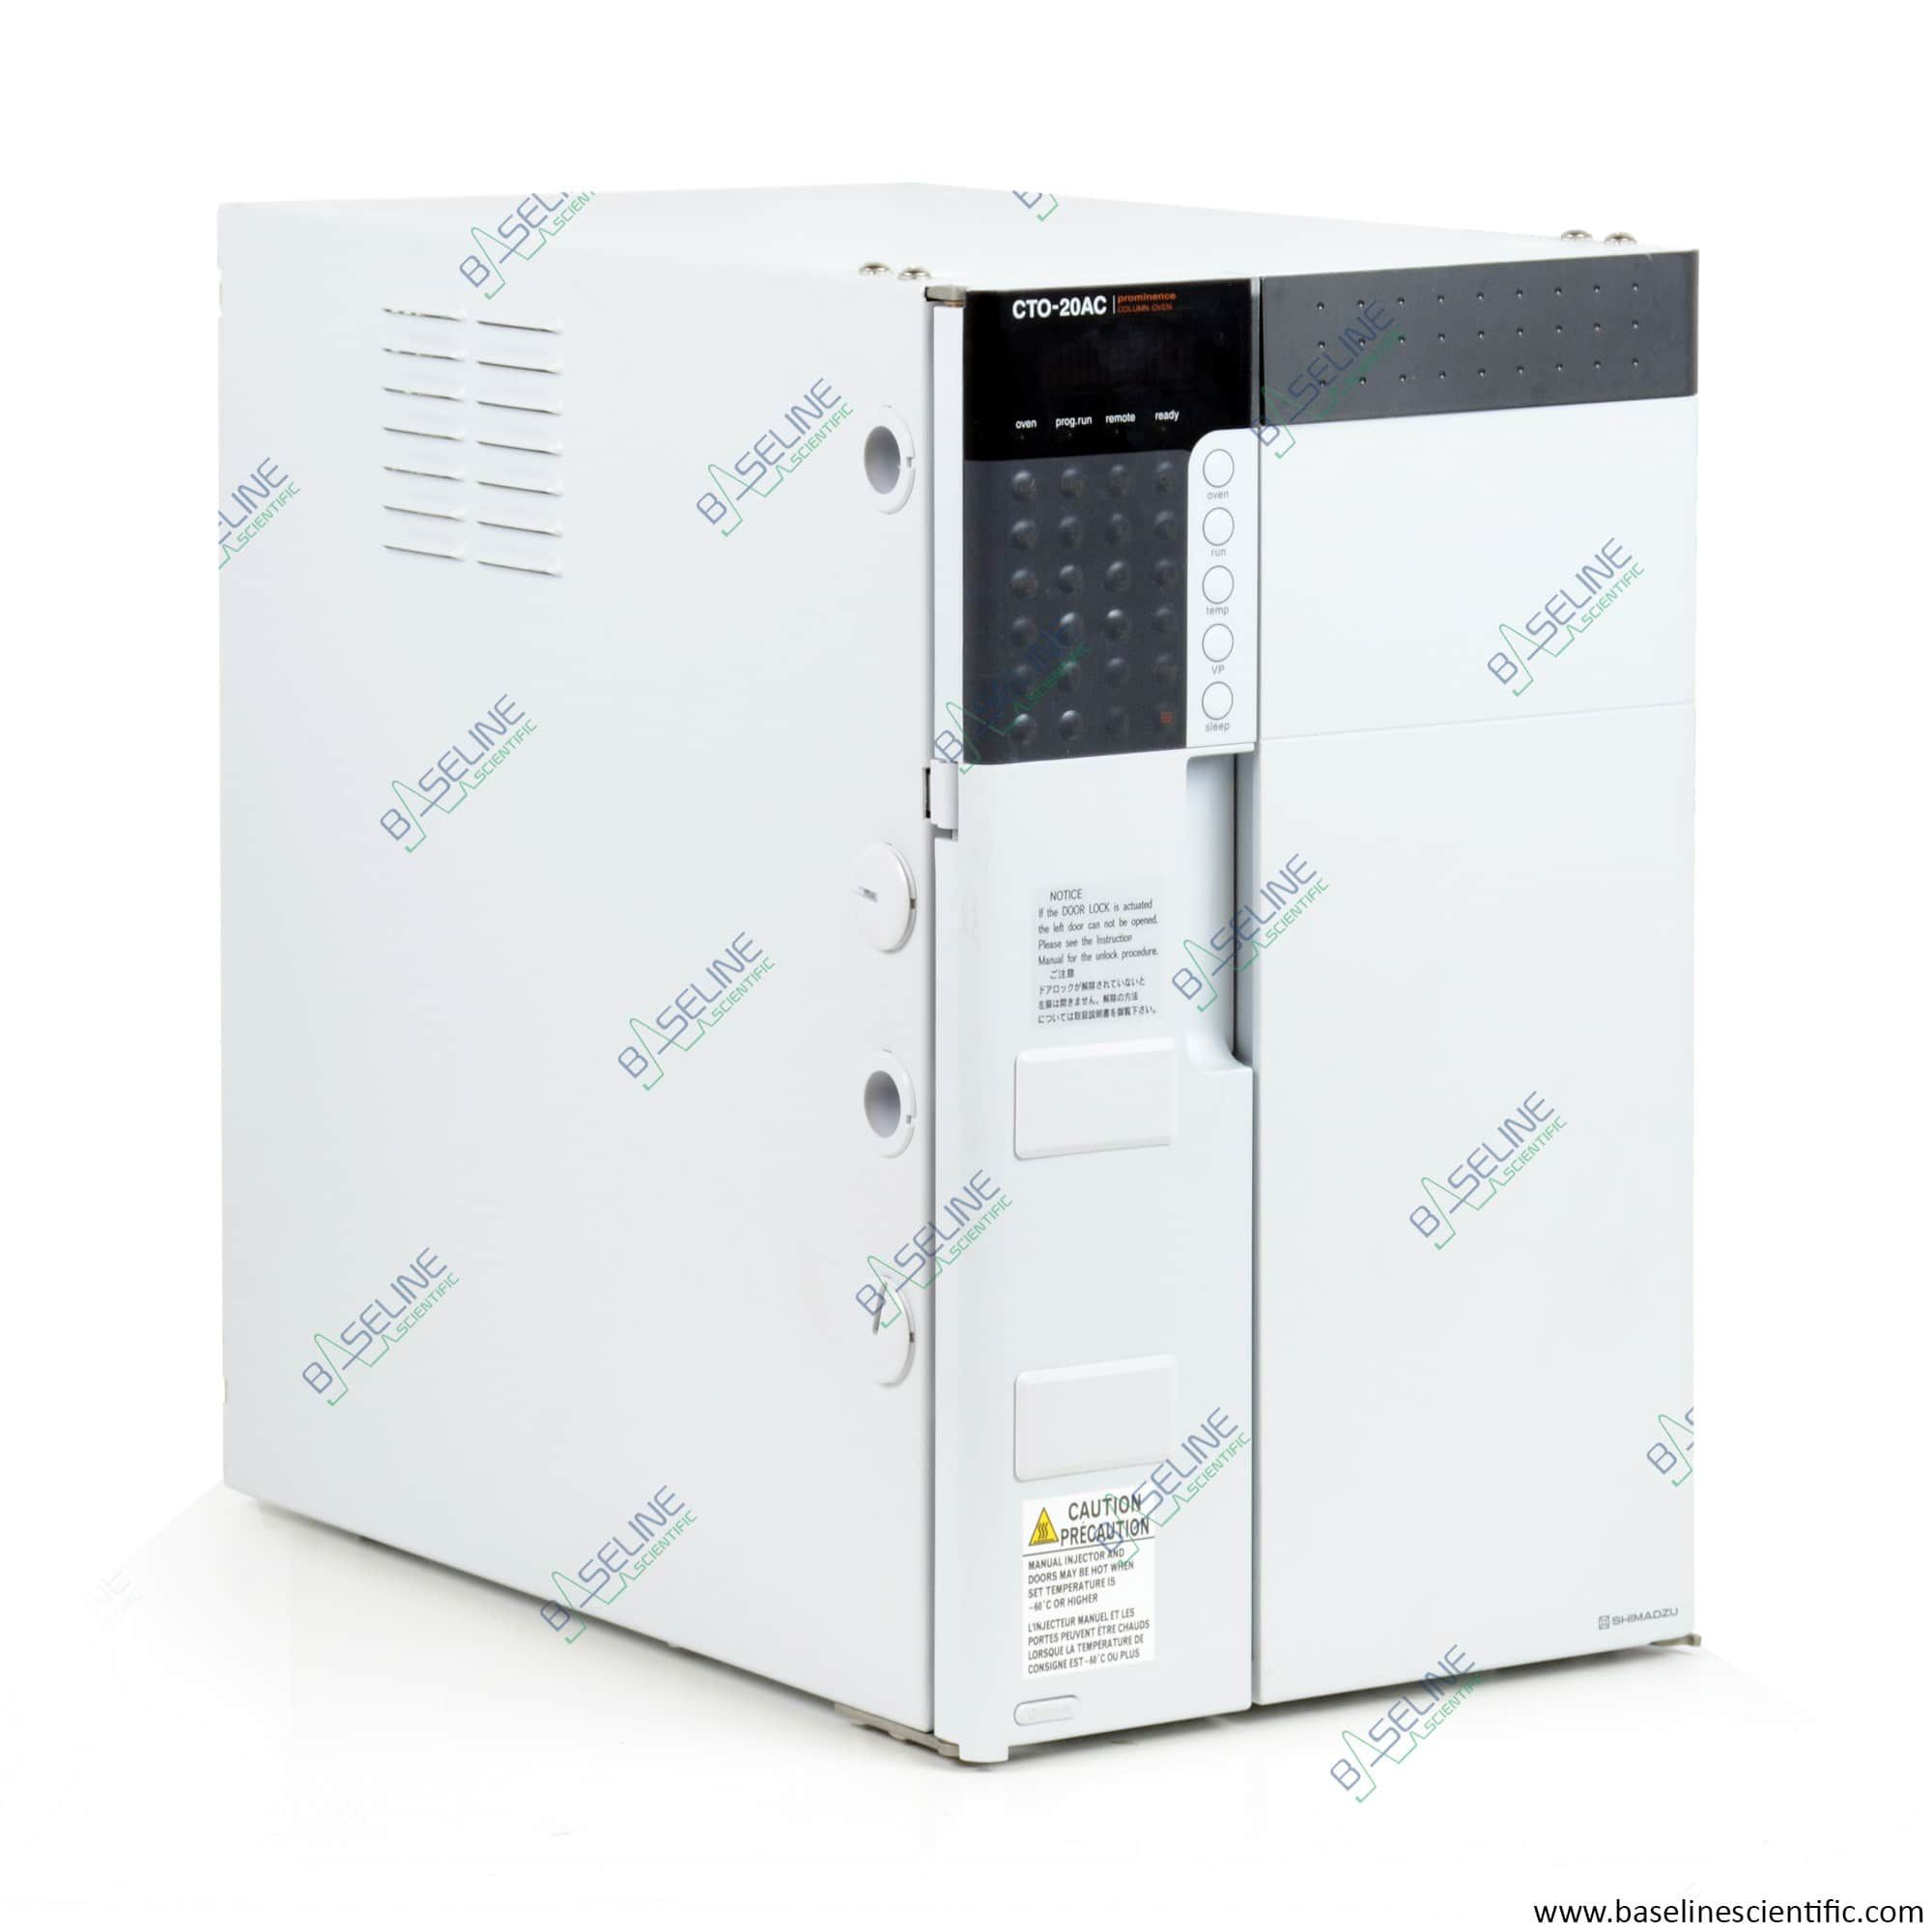 Refurbished Shimadzu CTO-20AC Prominence FPLC Column Oven with ONE YEAR WARRANTY